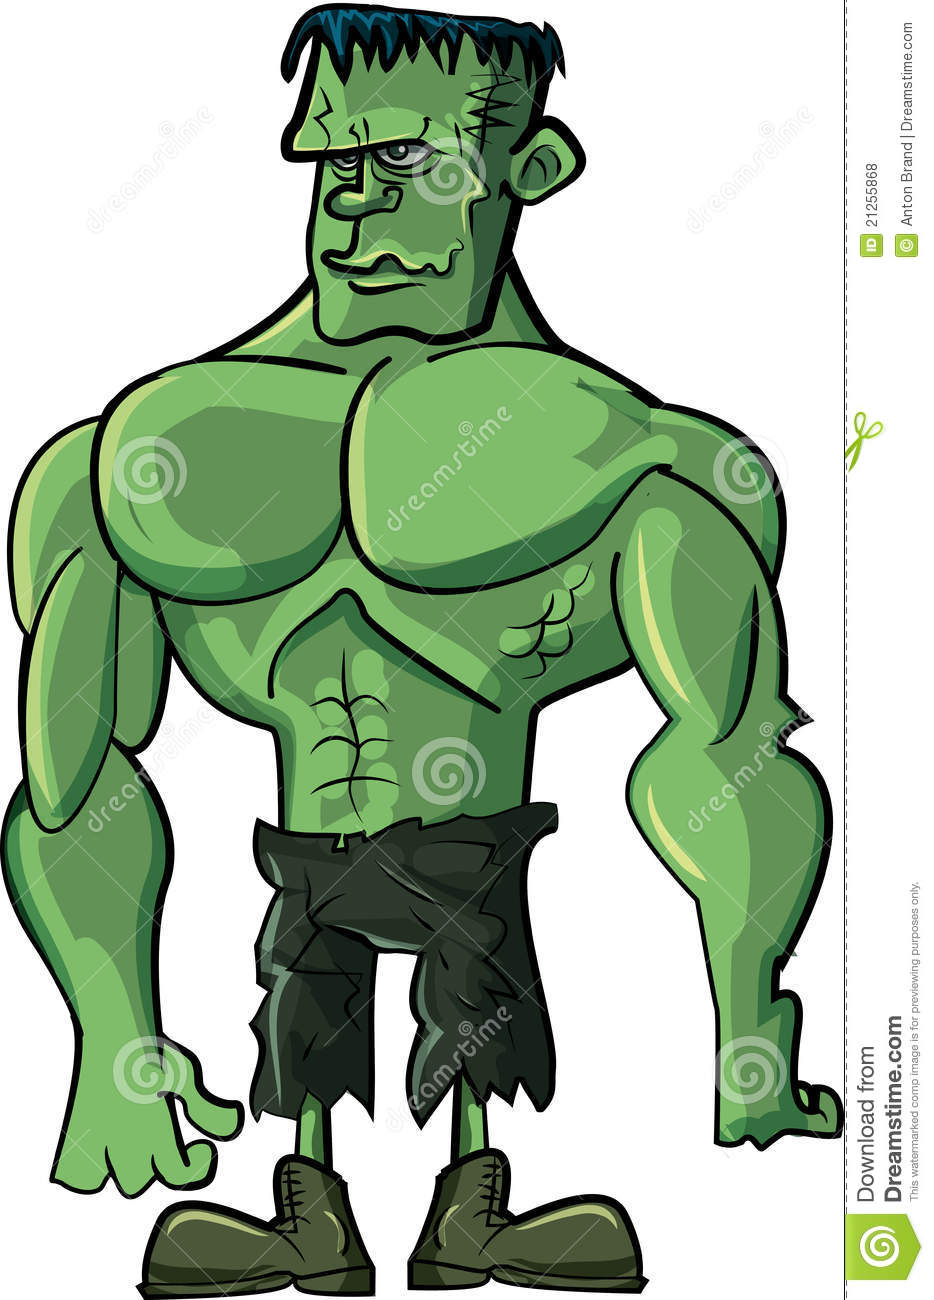 Cartoon Frankenstein Monster Stock Vector - Illustration ...